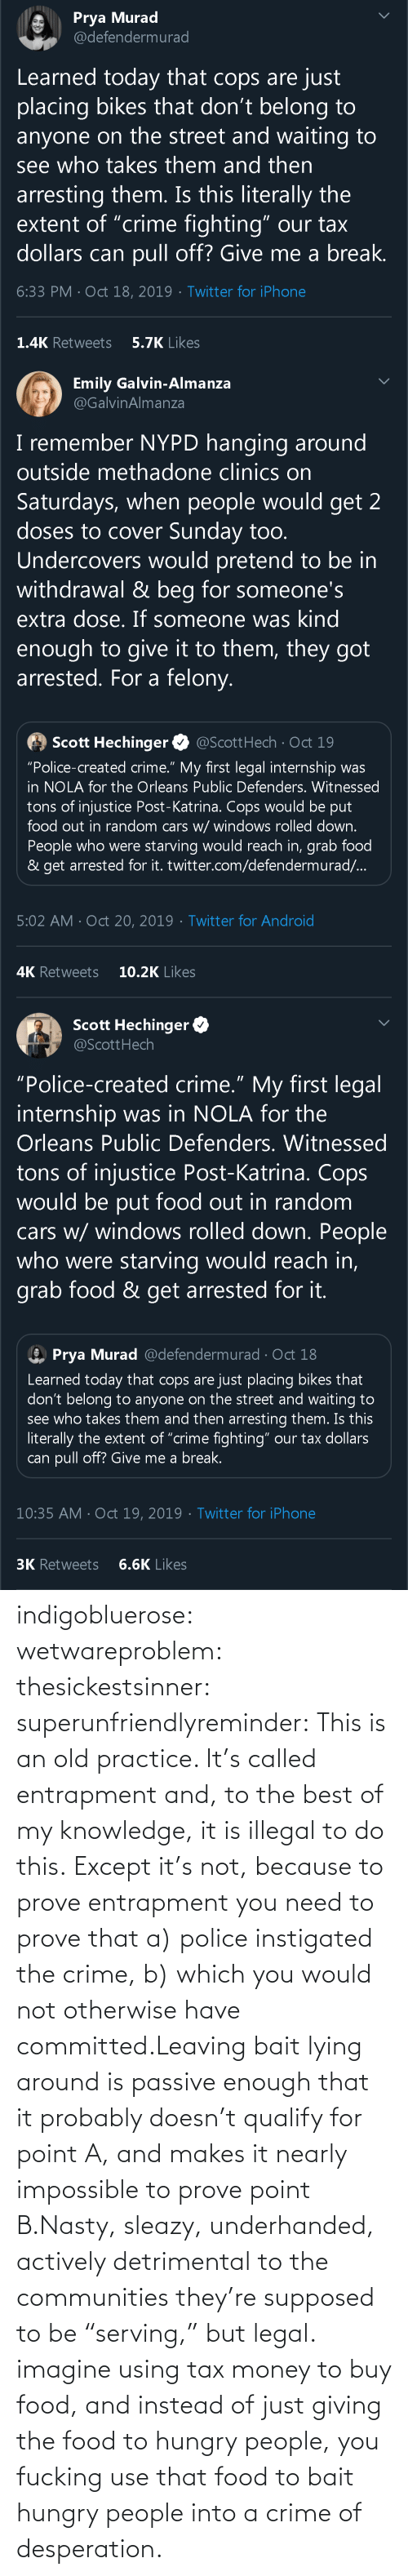 "tax: indigobluerose: wetwareproblem:  thesickestsinner:  superunfriendlyreminder:   This is an old practice.    It's called entrapment and, to the best of my knowledge, it is illegal to do this.  Except it's not, because to prove entrapment you need to prove that a) police instigated the crime, b) which you would not otherwise have committed.Leaving bait lying around is passive enough that it probably doesn't qualify for point A, and makes it nearly impossible to prove point B.Nasty, sleazy, underhanded, actively detrimental to the communities they're supposed to be ""serving,"" but legal.  imagine using tax money to buy food, and instead of just giving the food to hungry people, you fucking use that food to bait hungry people into a crime of desperation."